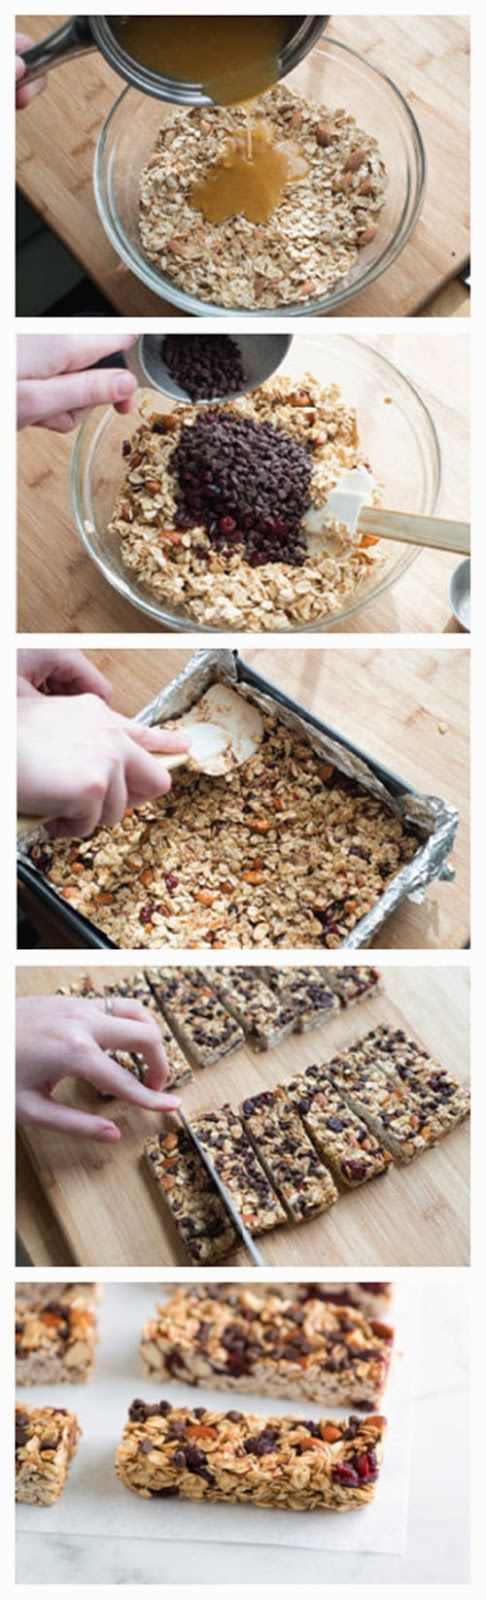 These granola bars are so much better than what you can by at the store, especially since you can substitute for your favorite dried fruit o...